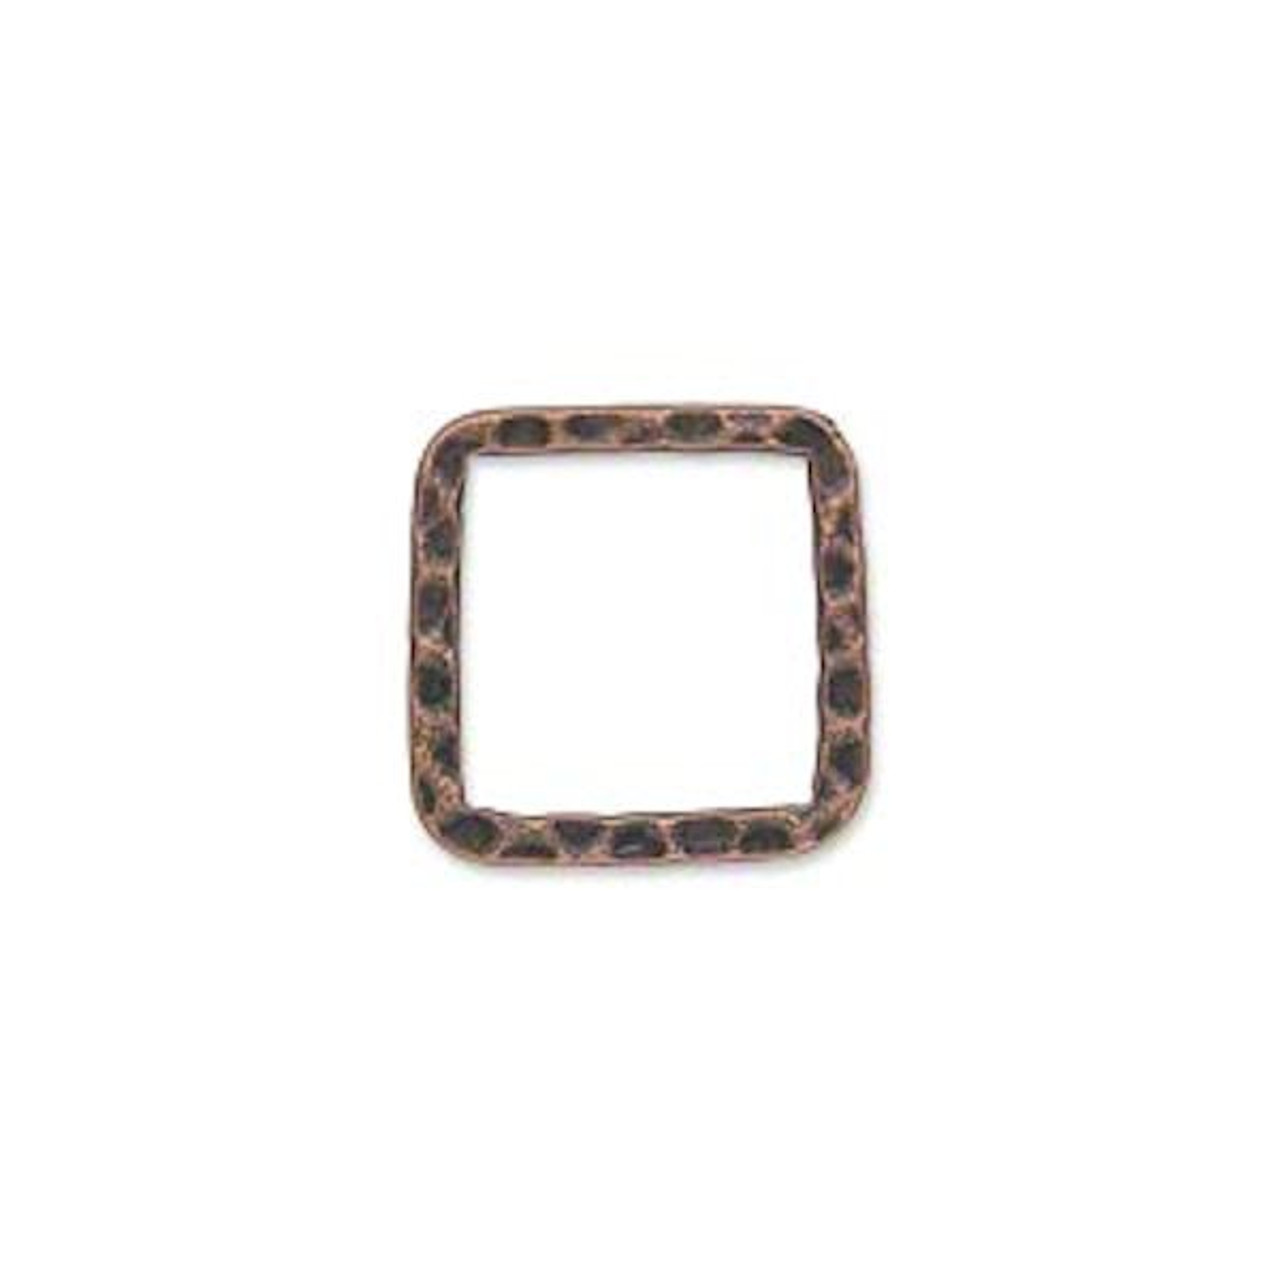 10 Silver Plated Steel 20x20mm Hammered Square Links